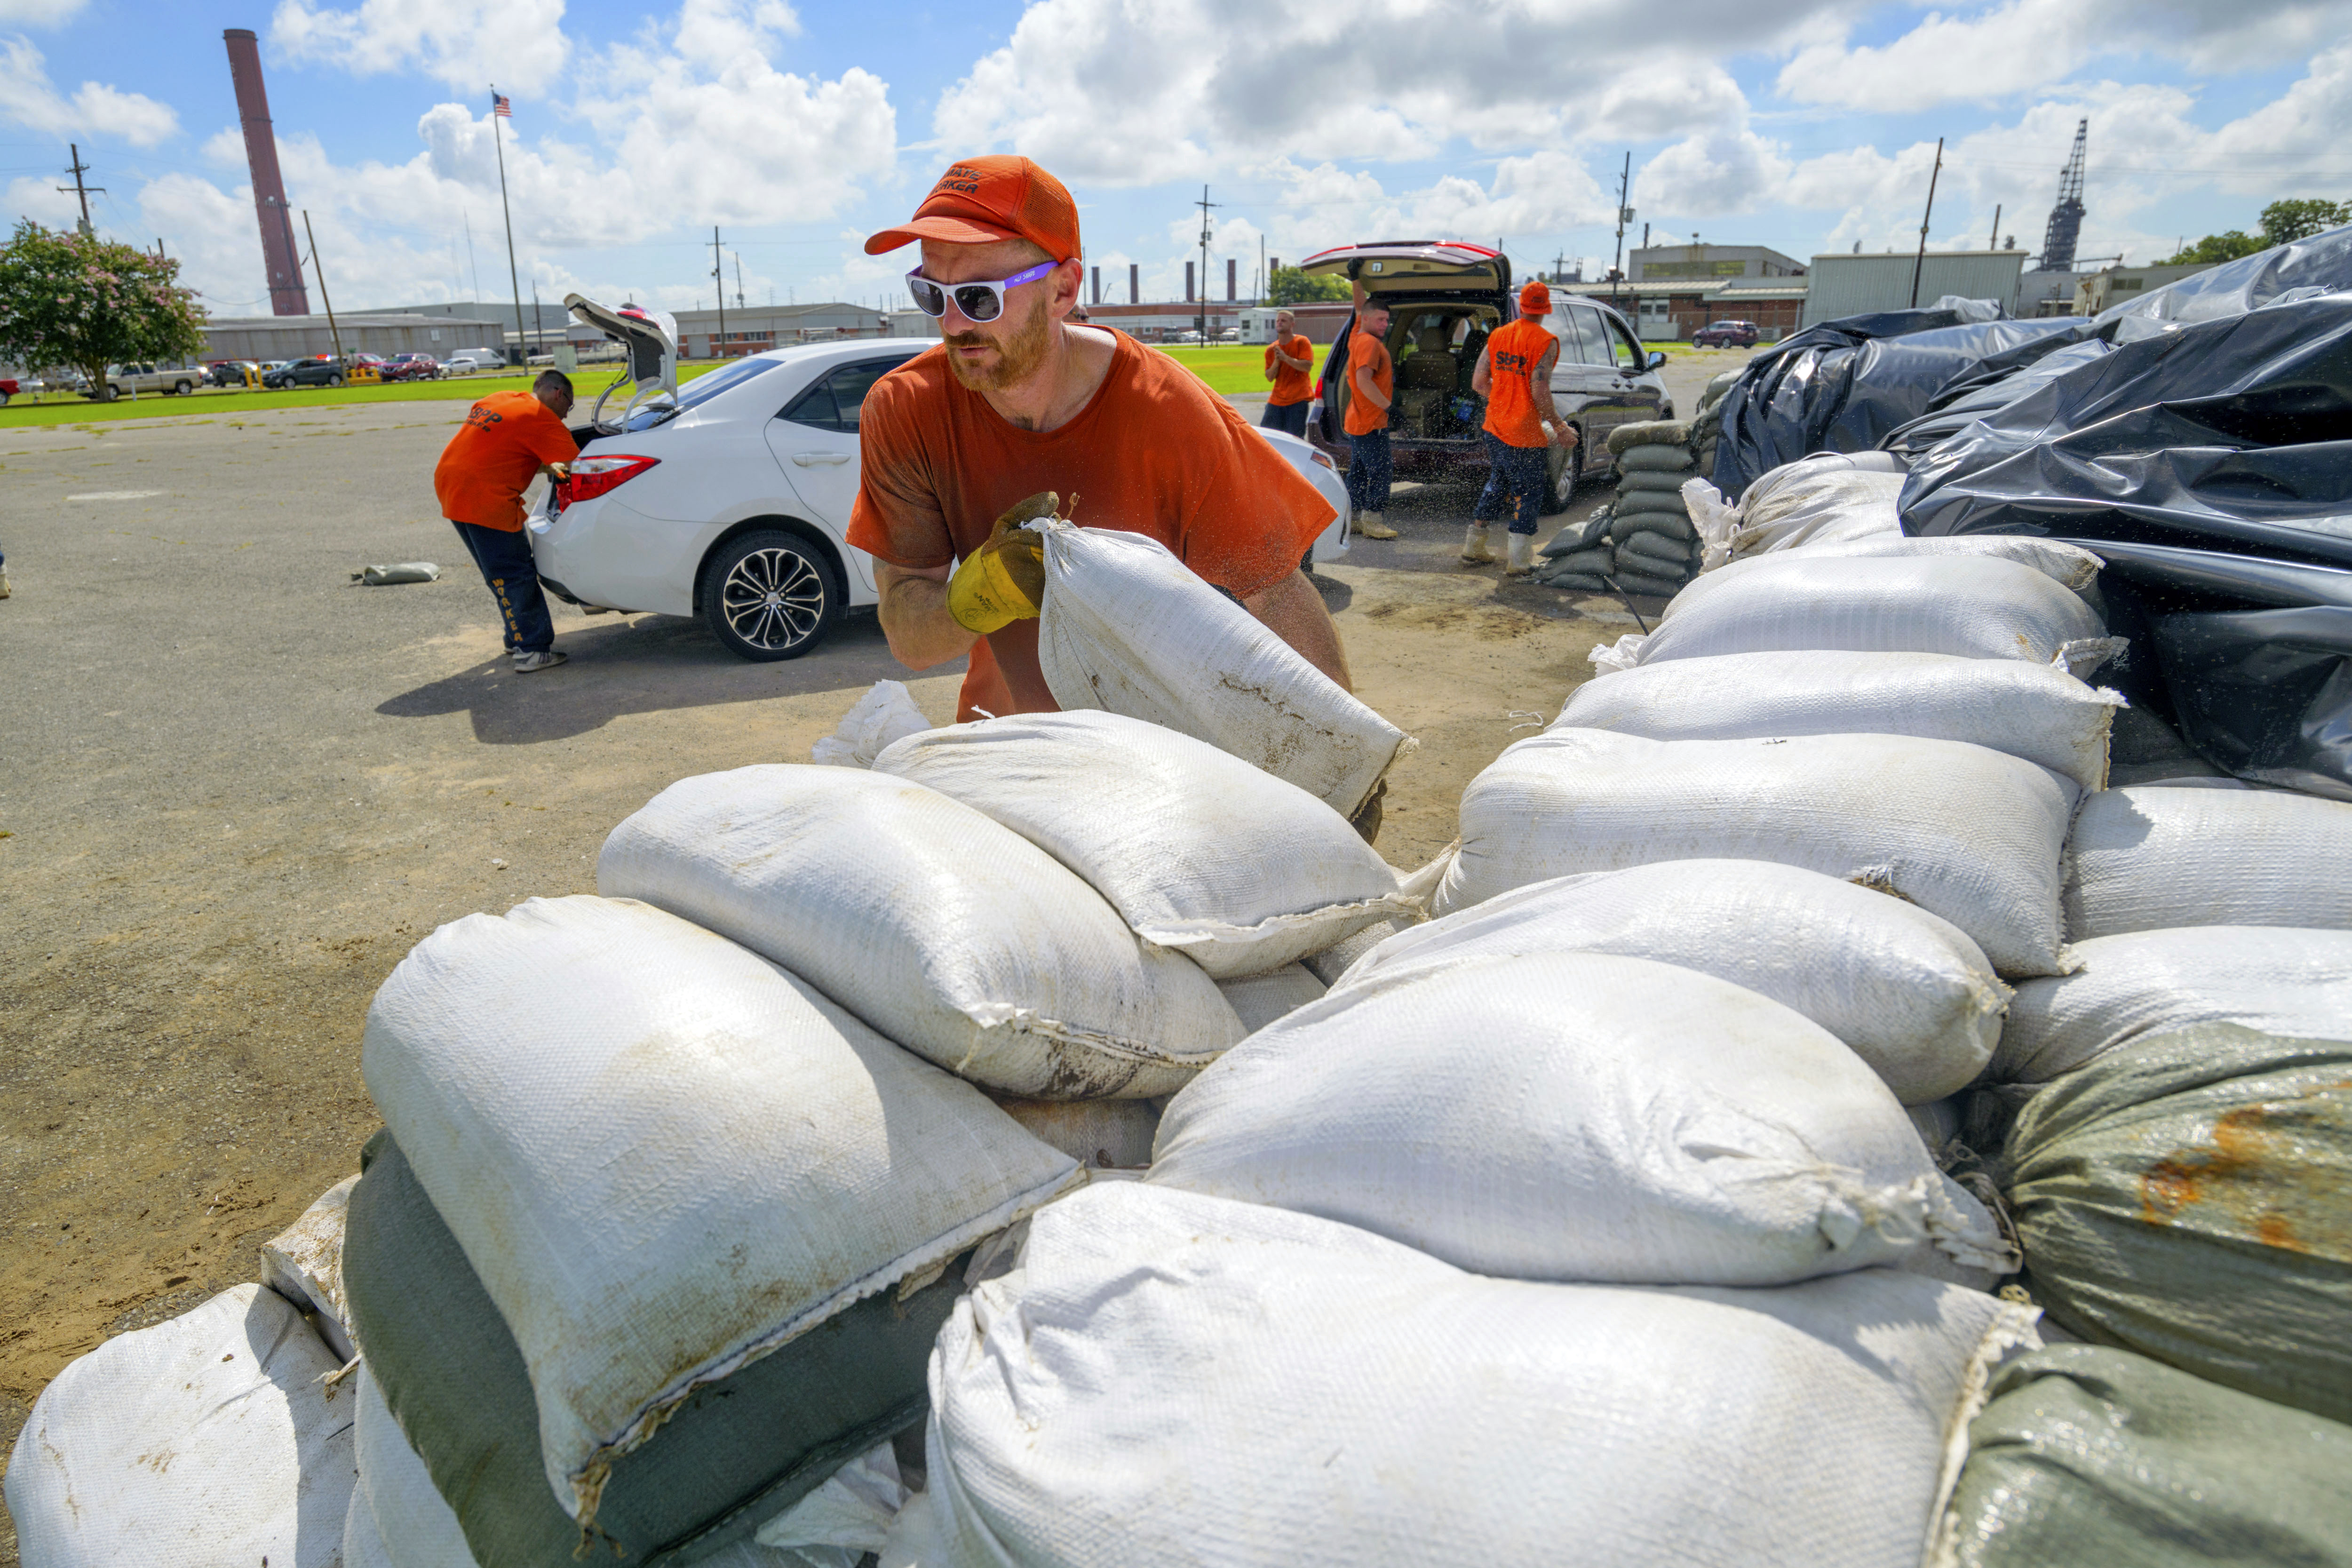 Westlake Legal Group louisian-sand-bags- President Trump declares state of emergency in Louisiana, sends federal assistance ahead of Tropical Storm Barry fox-news/weather fox-news/us/us-regions/southeast/louisiana fox news fnc/us fnc Danielle Wallace article 82b1a3ea-613a-5b6f-af1a-7286b167c085